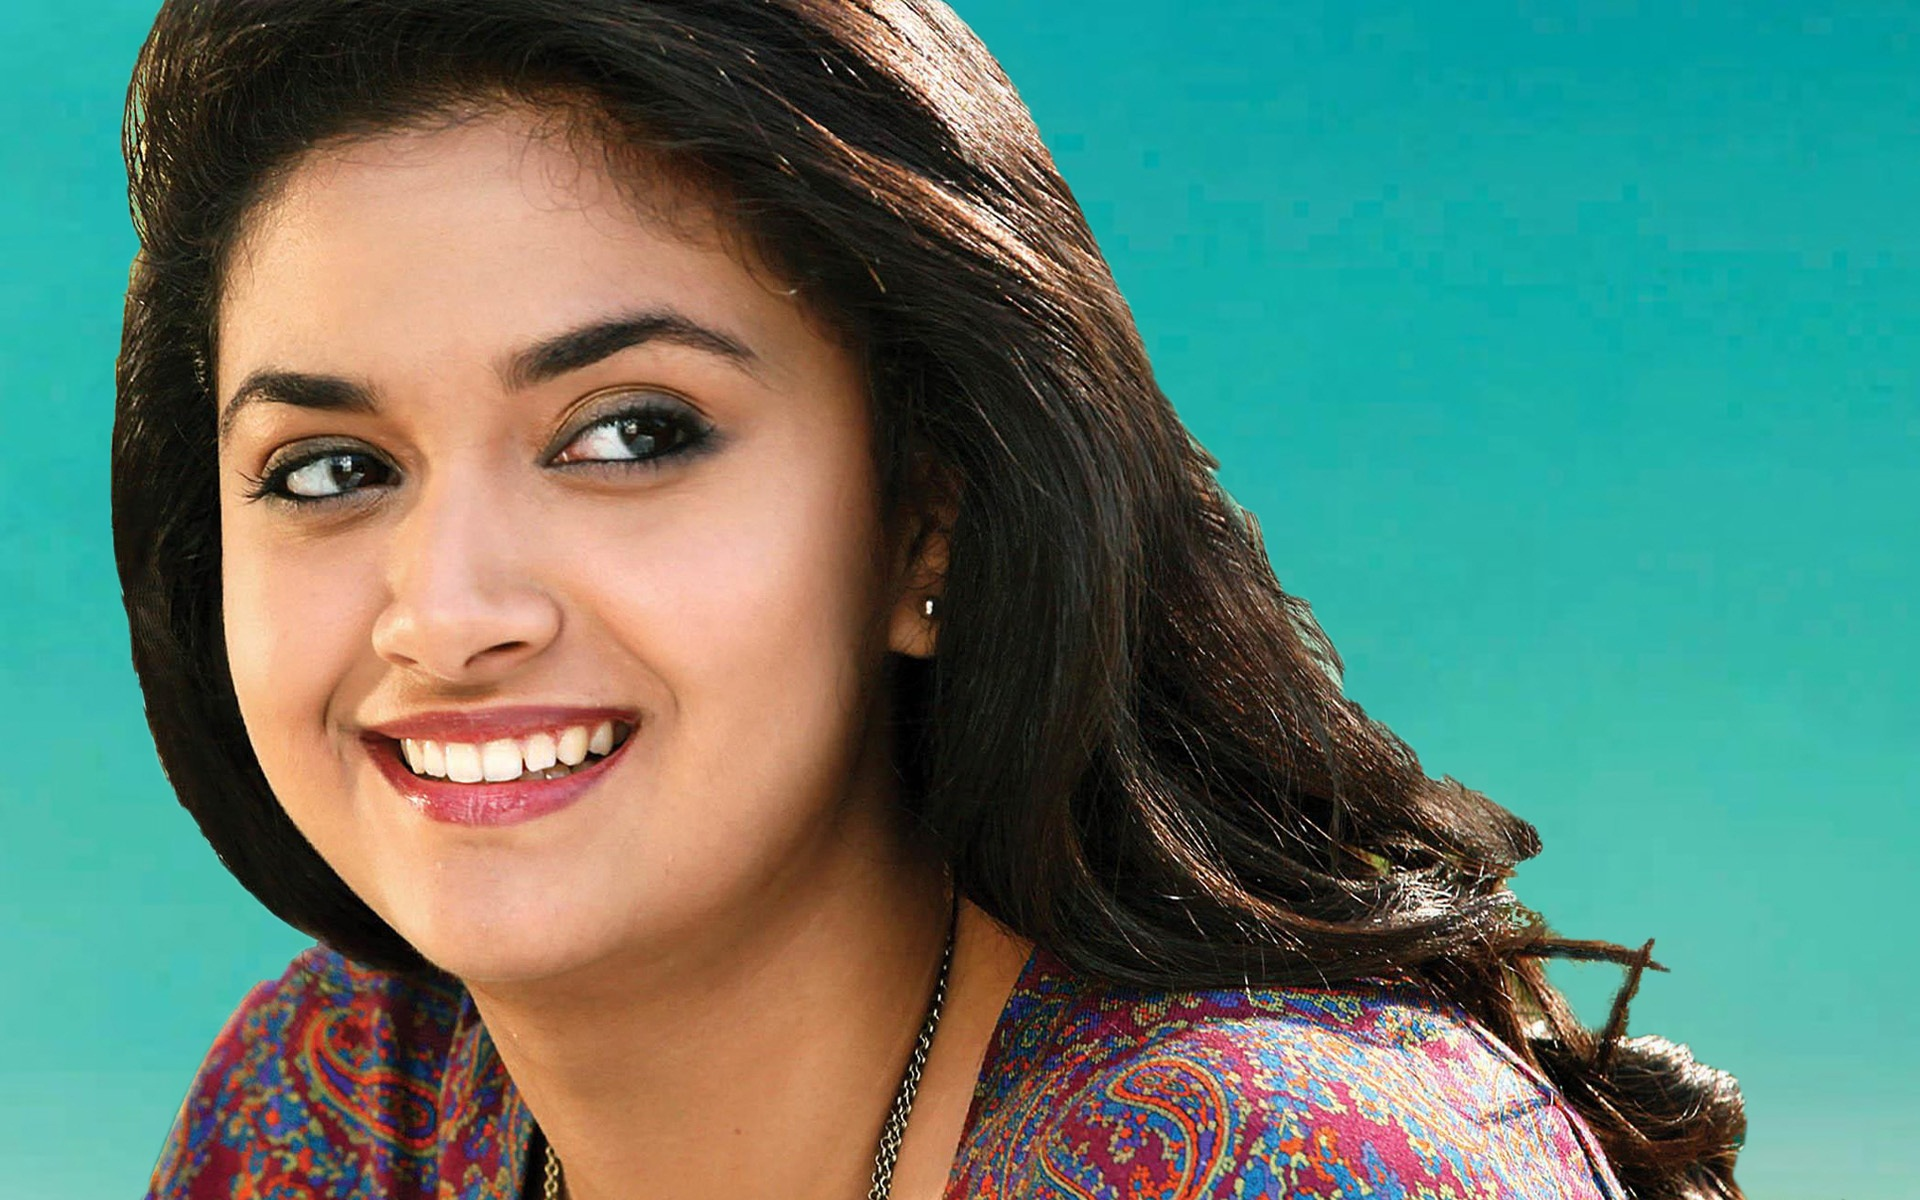 Most Beautiful South Girl Hd Wallpapers - Keerthi Suresh Photos Download , HD Wallpaper & Backgrounds